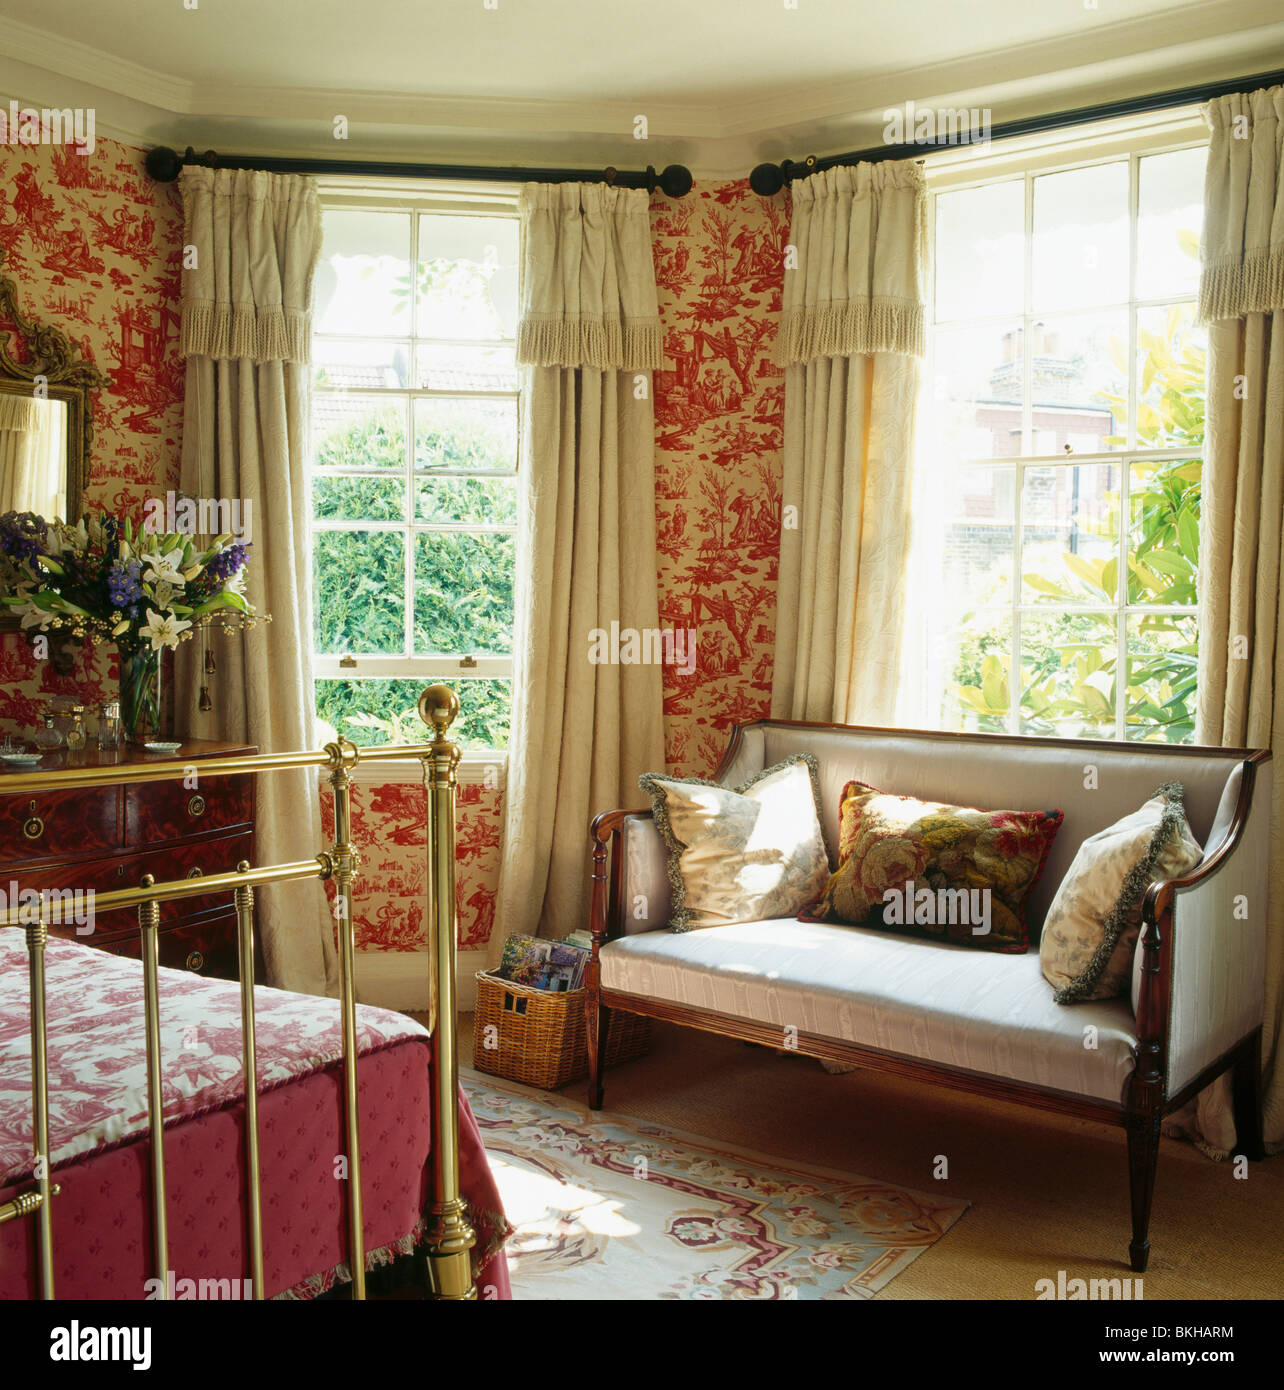 Elegant Red Toile De Jouy Wallpaper In Bedroom With Antique Sofa In Front Of Window  With Cream Curtains